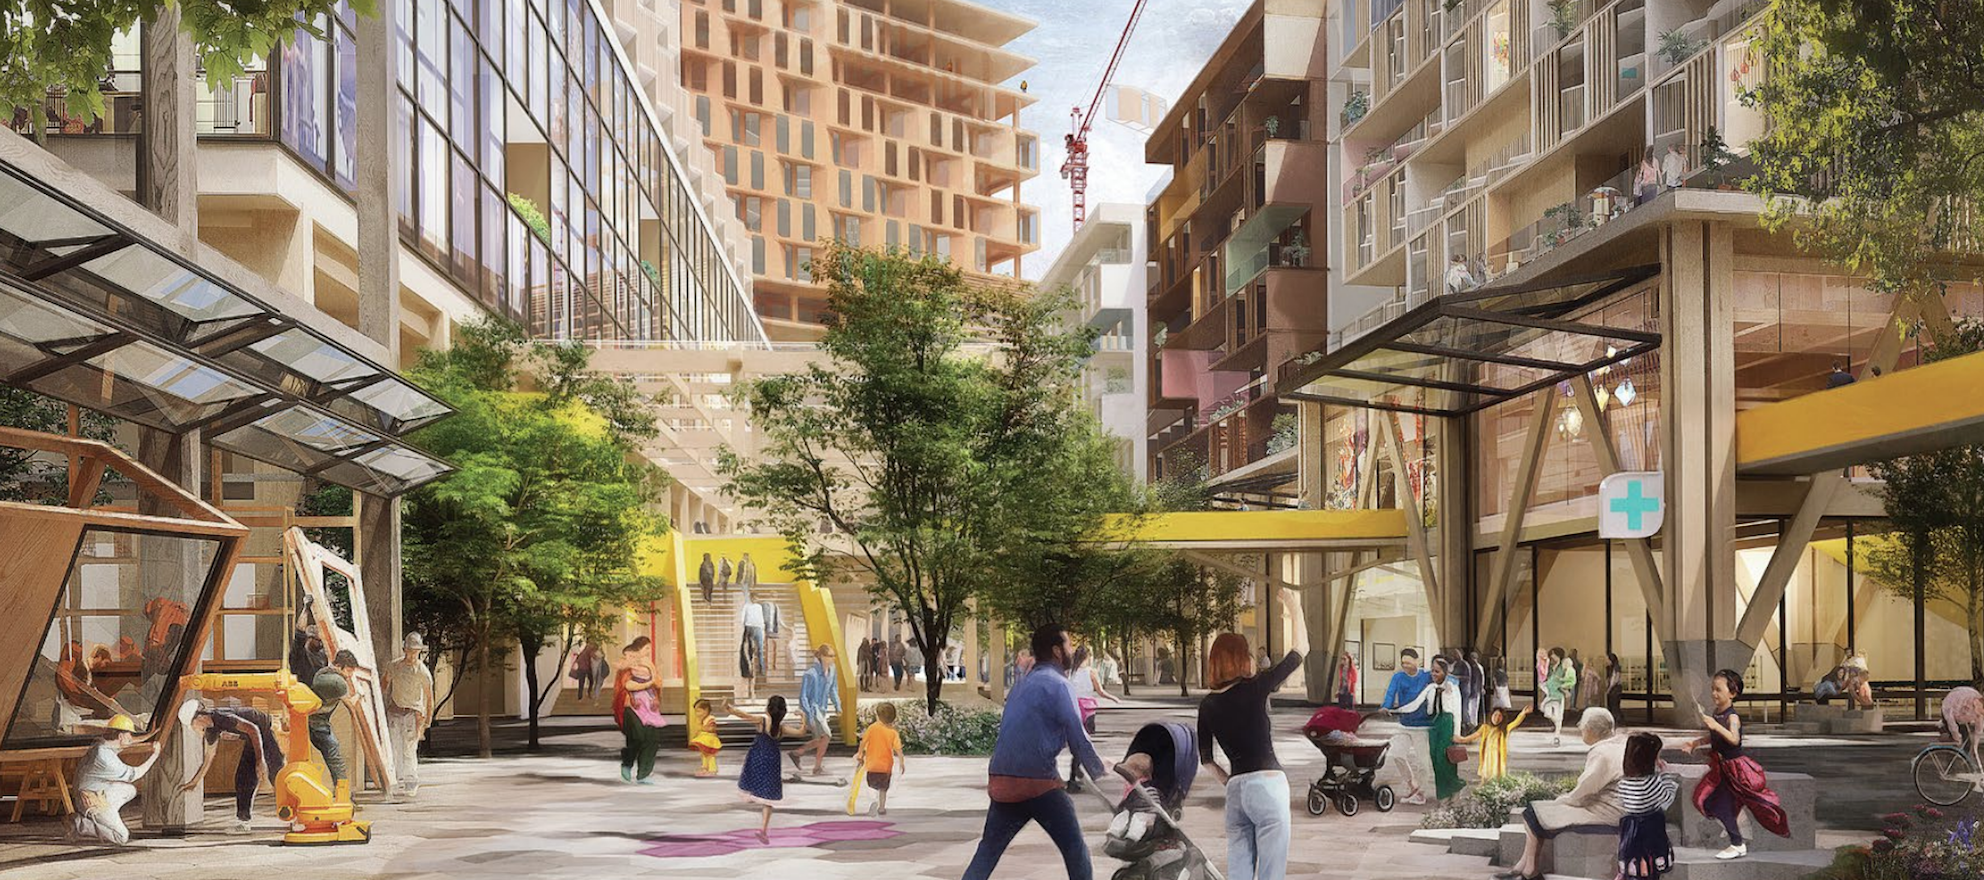 Google sibling Sidewalk unveils its master plan for Toronto smart city